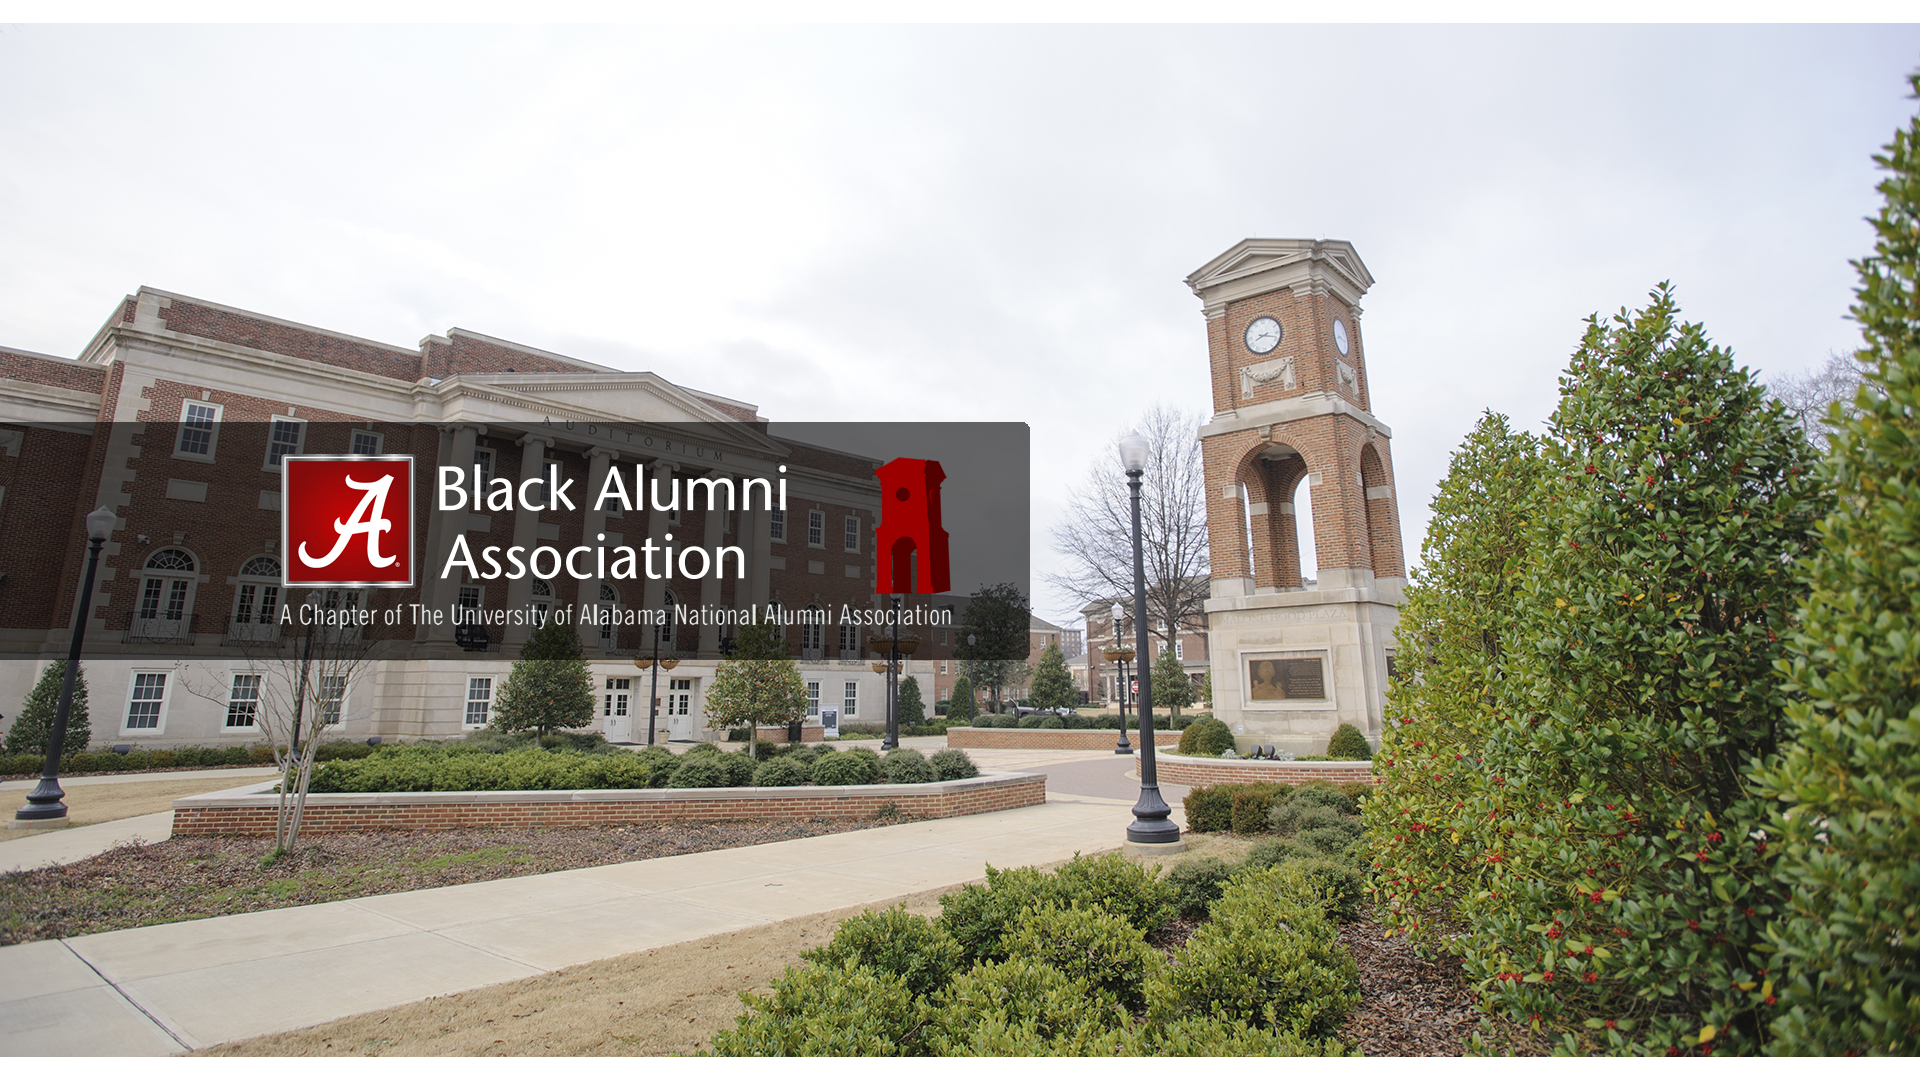 Black Alumni Association over a photo of Fosters Auditorium and Malone Hood Plaza